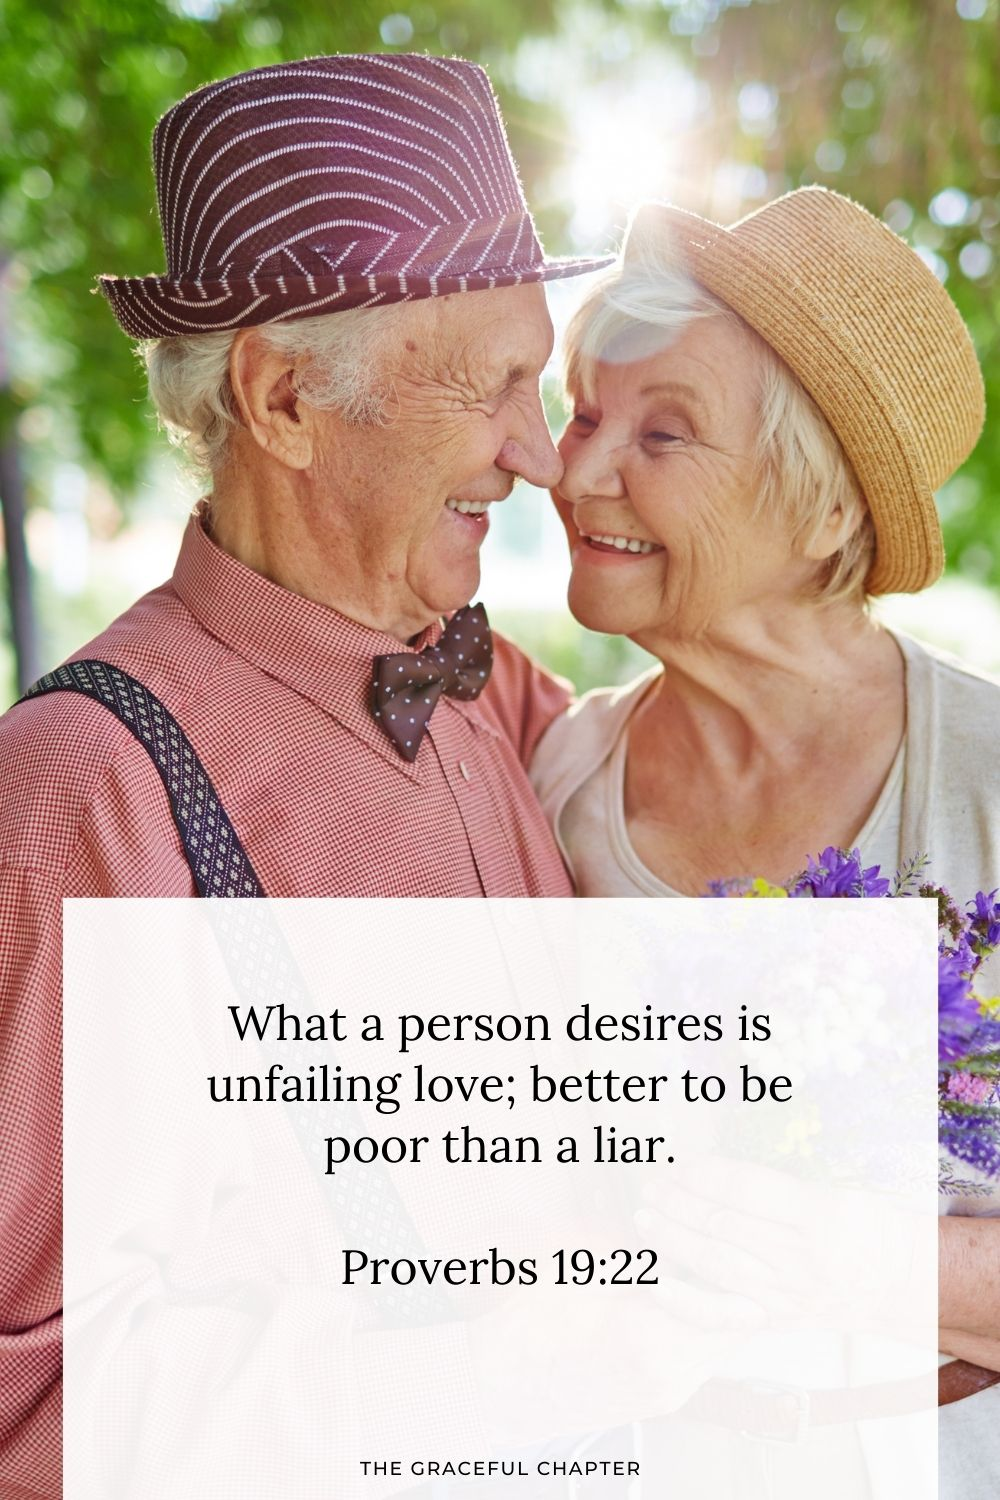 What a person desires is unfailing love; better to be poor than a liar. Proverbs 19:22